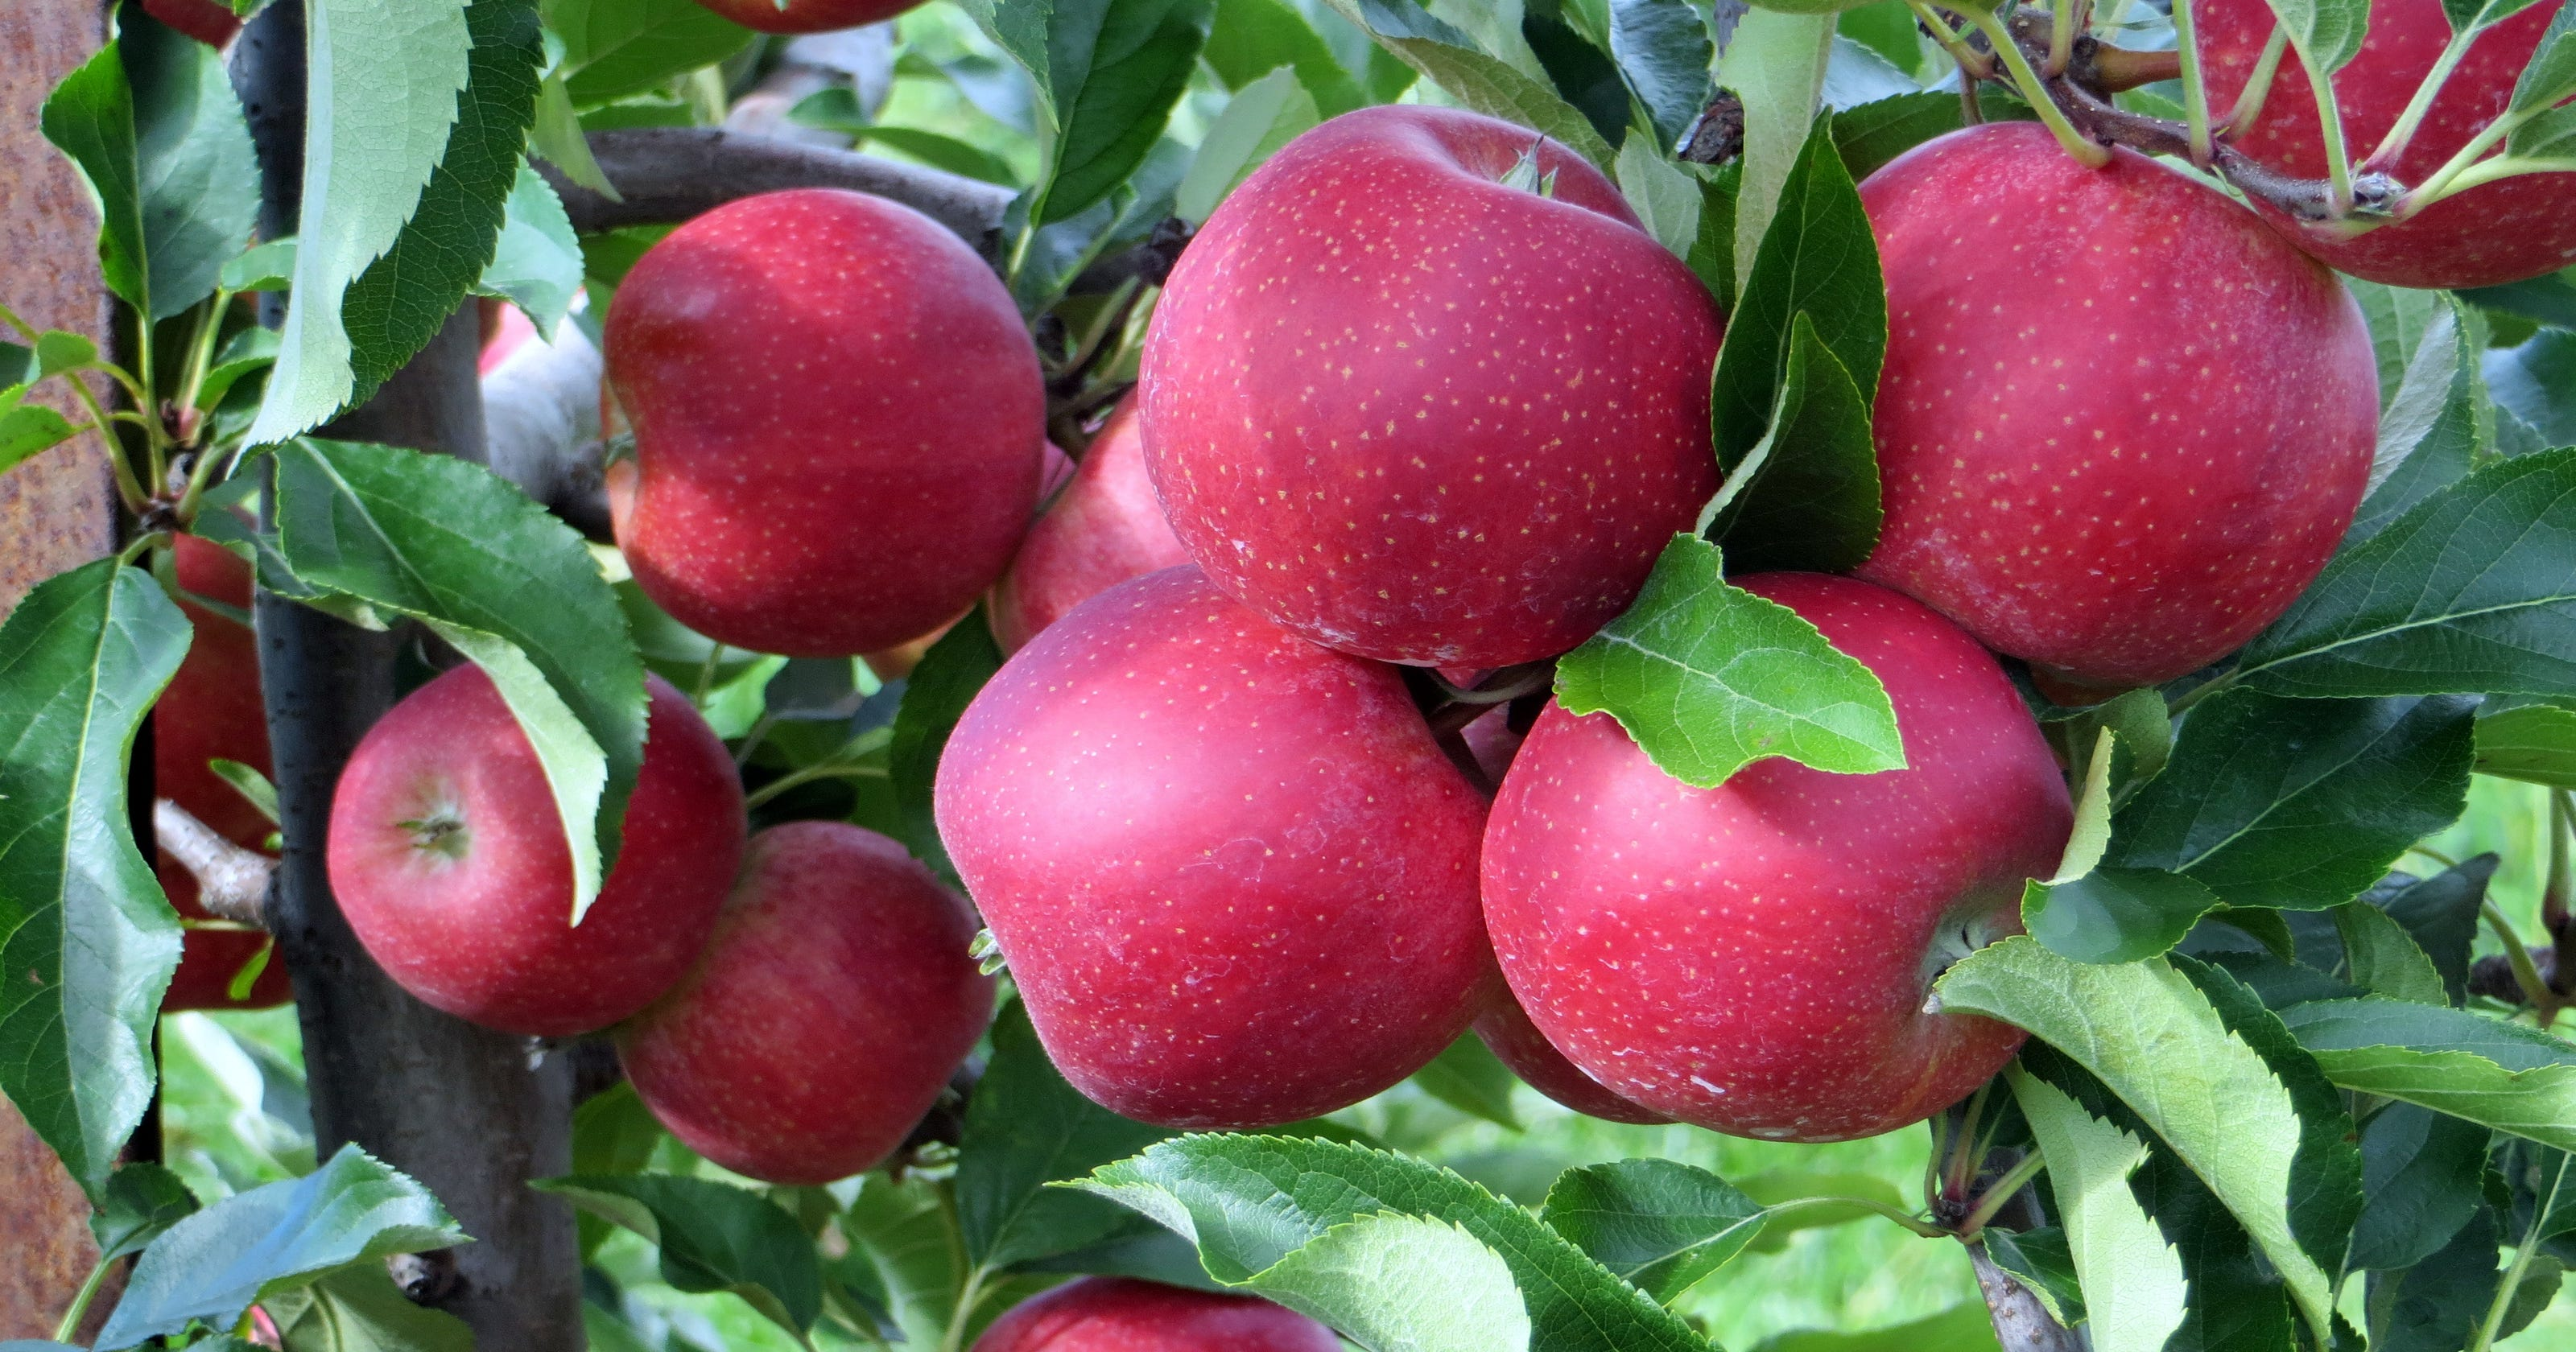 5 Places To Go Apple Picking In New Jersey